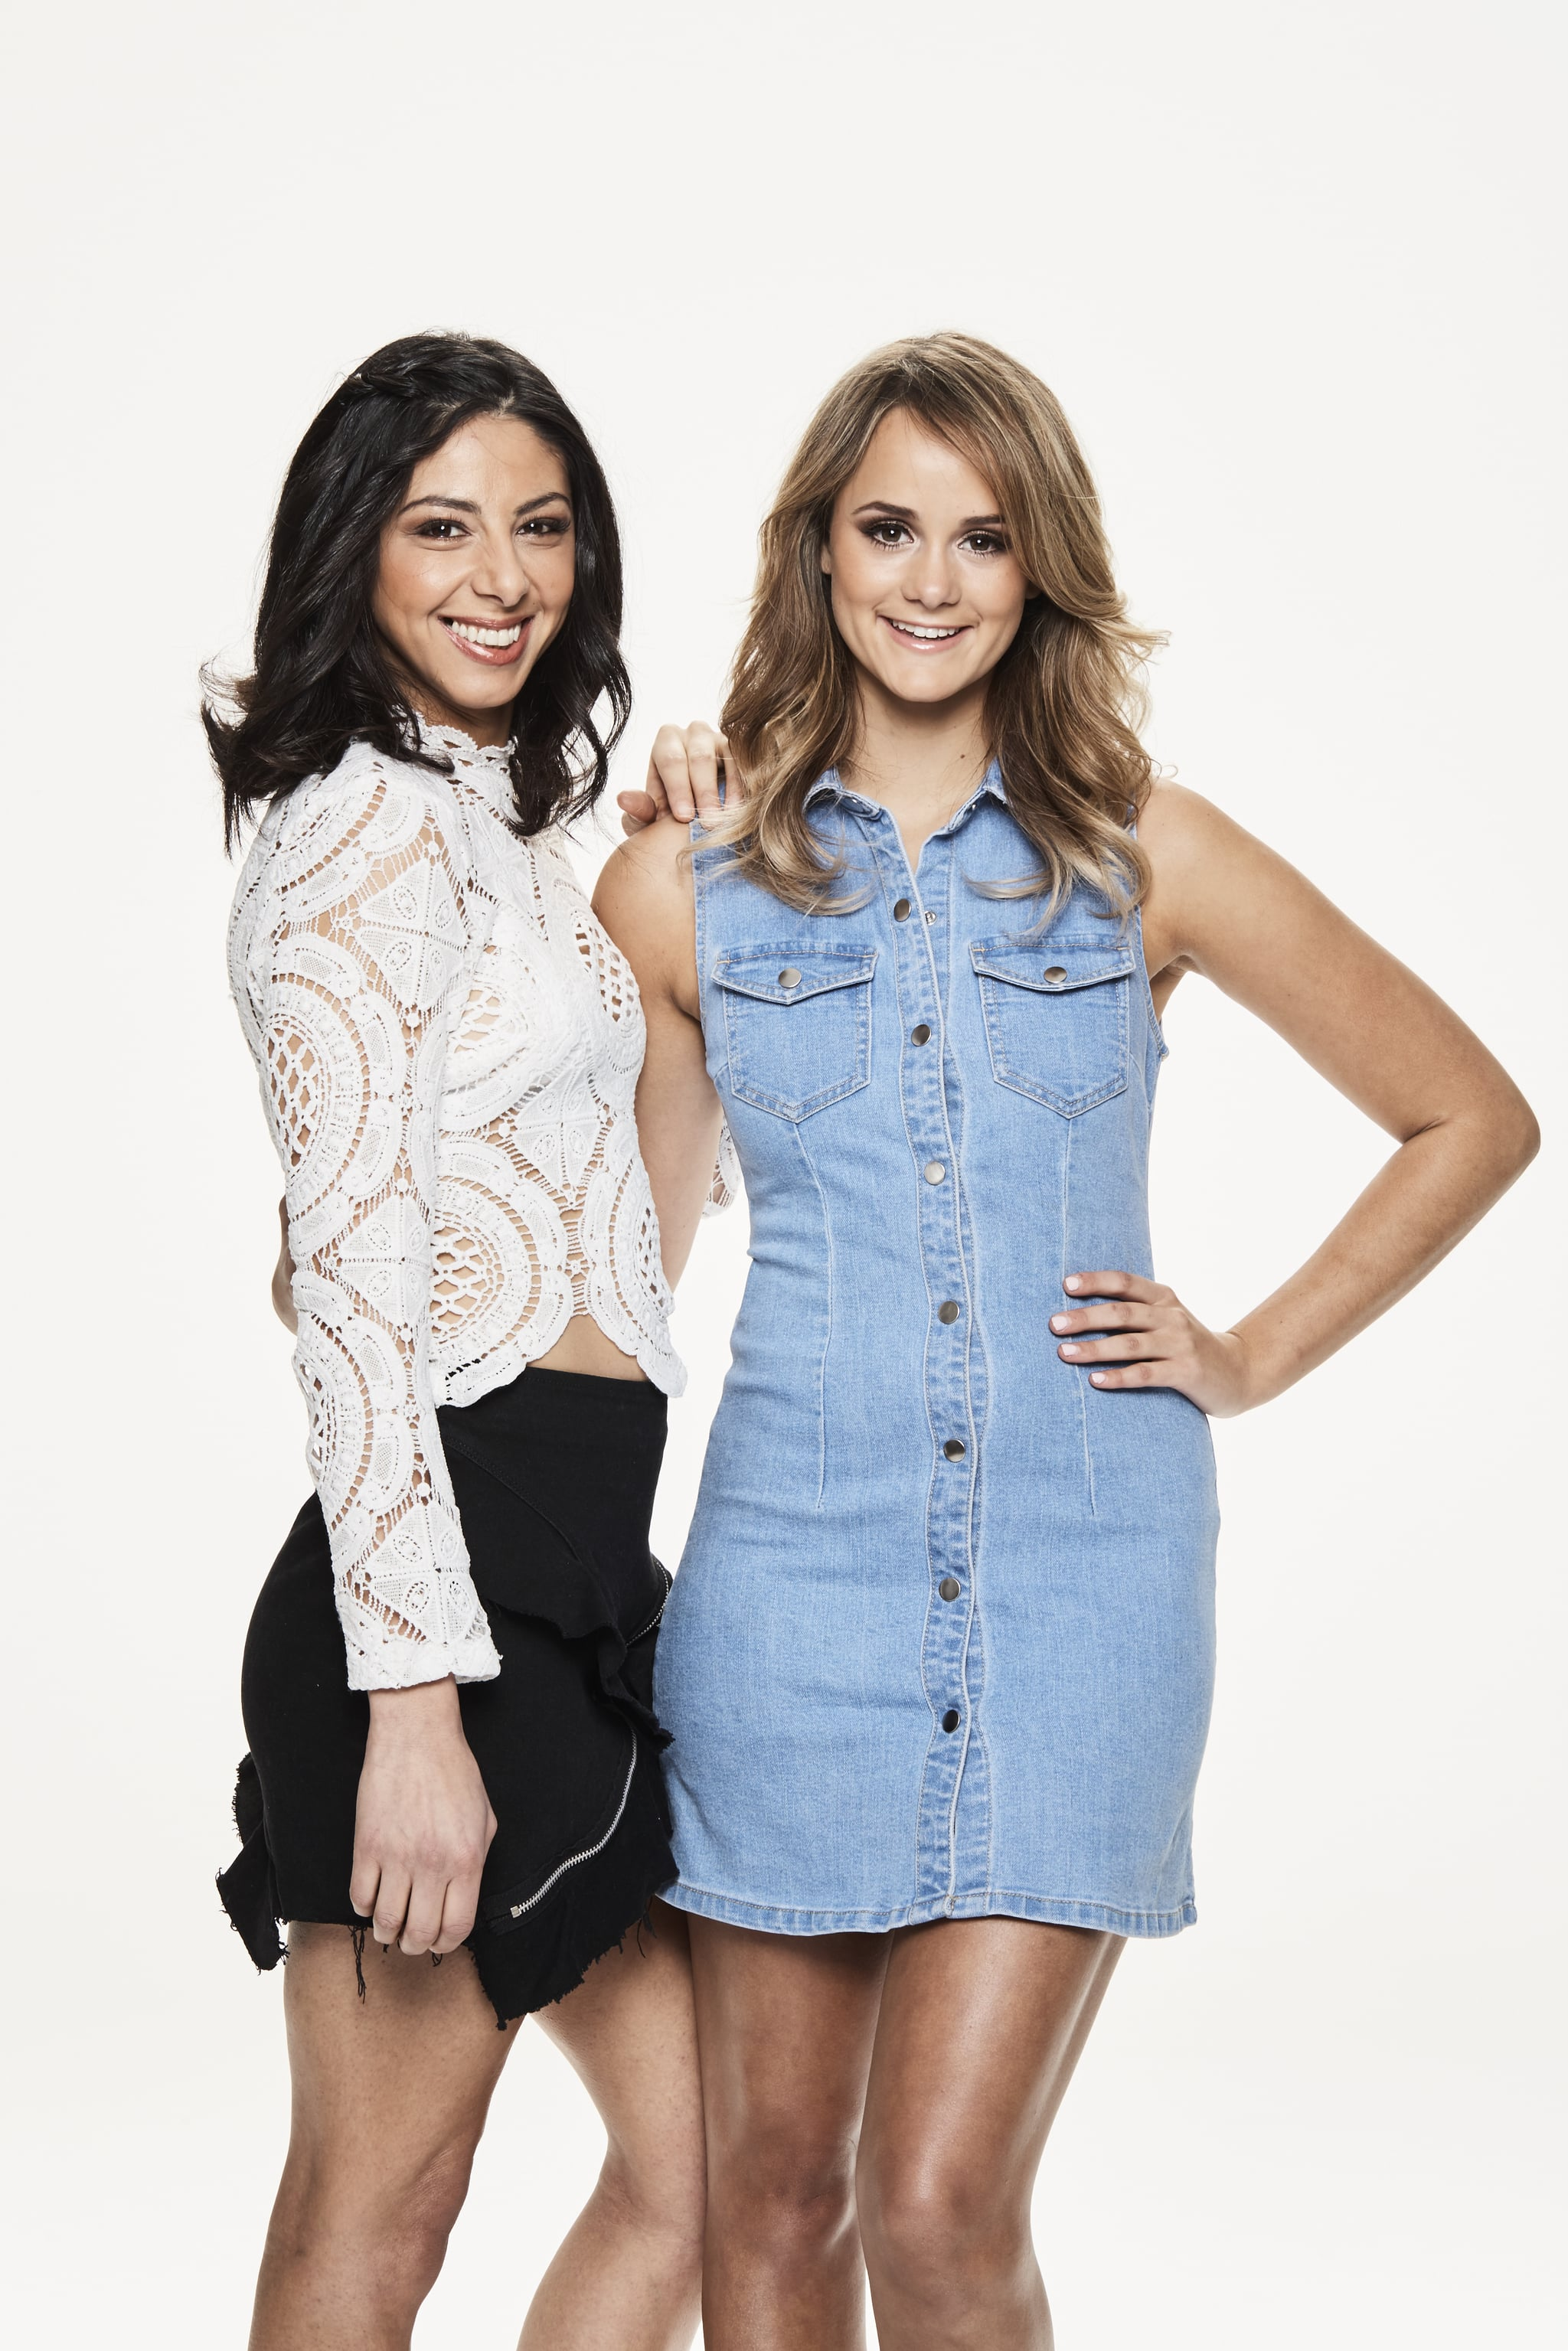 Roula Rachael and Emma Fight on MKR Interview | POPSUGAR Celebrity ...